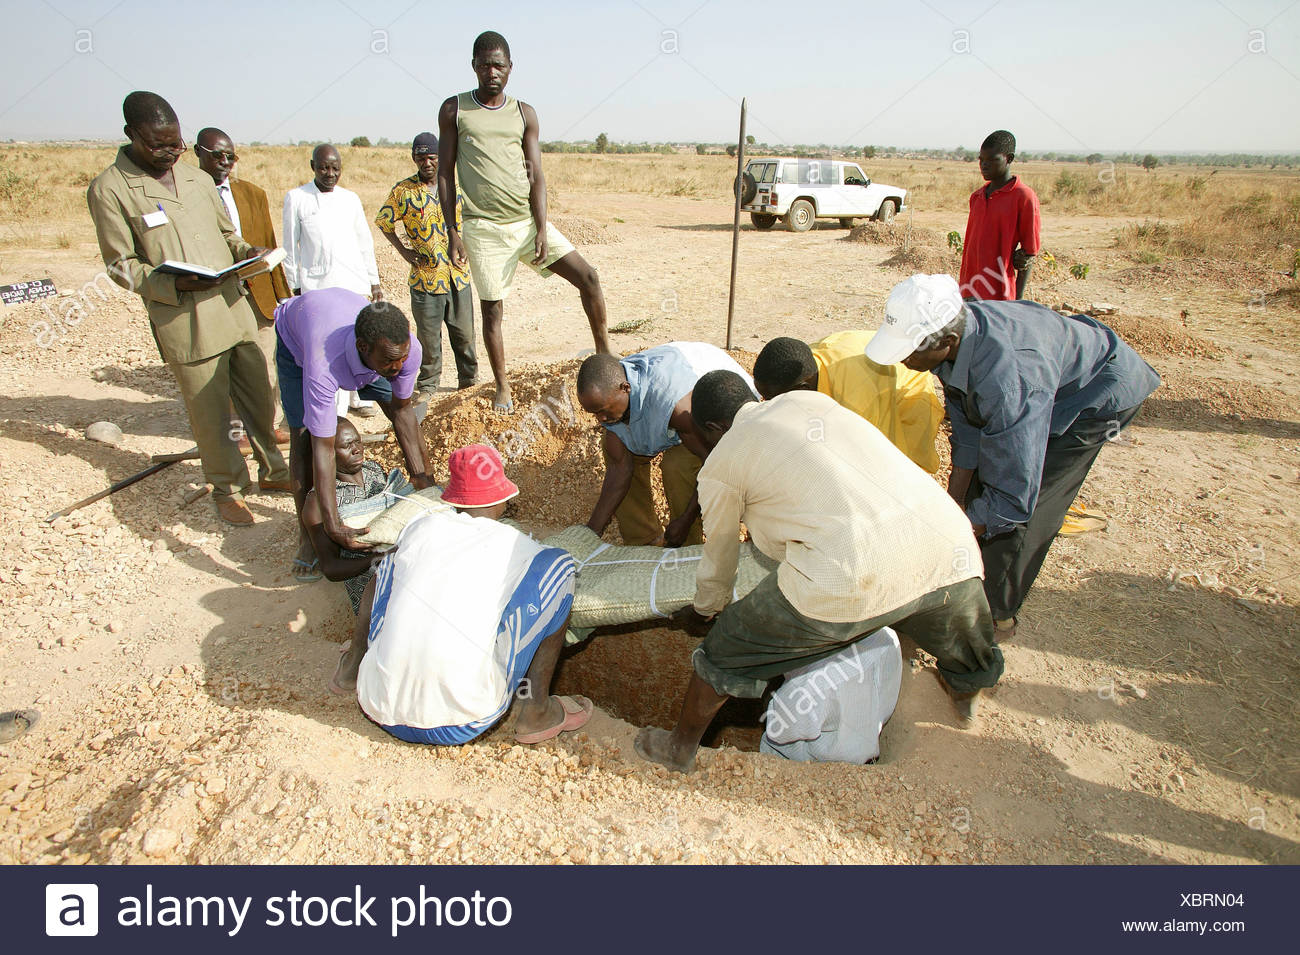 Body of a woman who died of HIV/AIDS being lowered into a grave during her funeral, Garoua, Cameroon, Africa - Stock Image